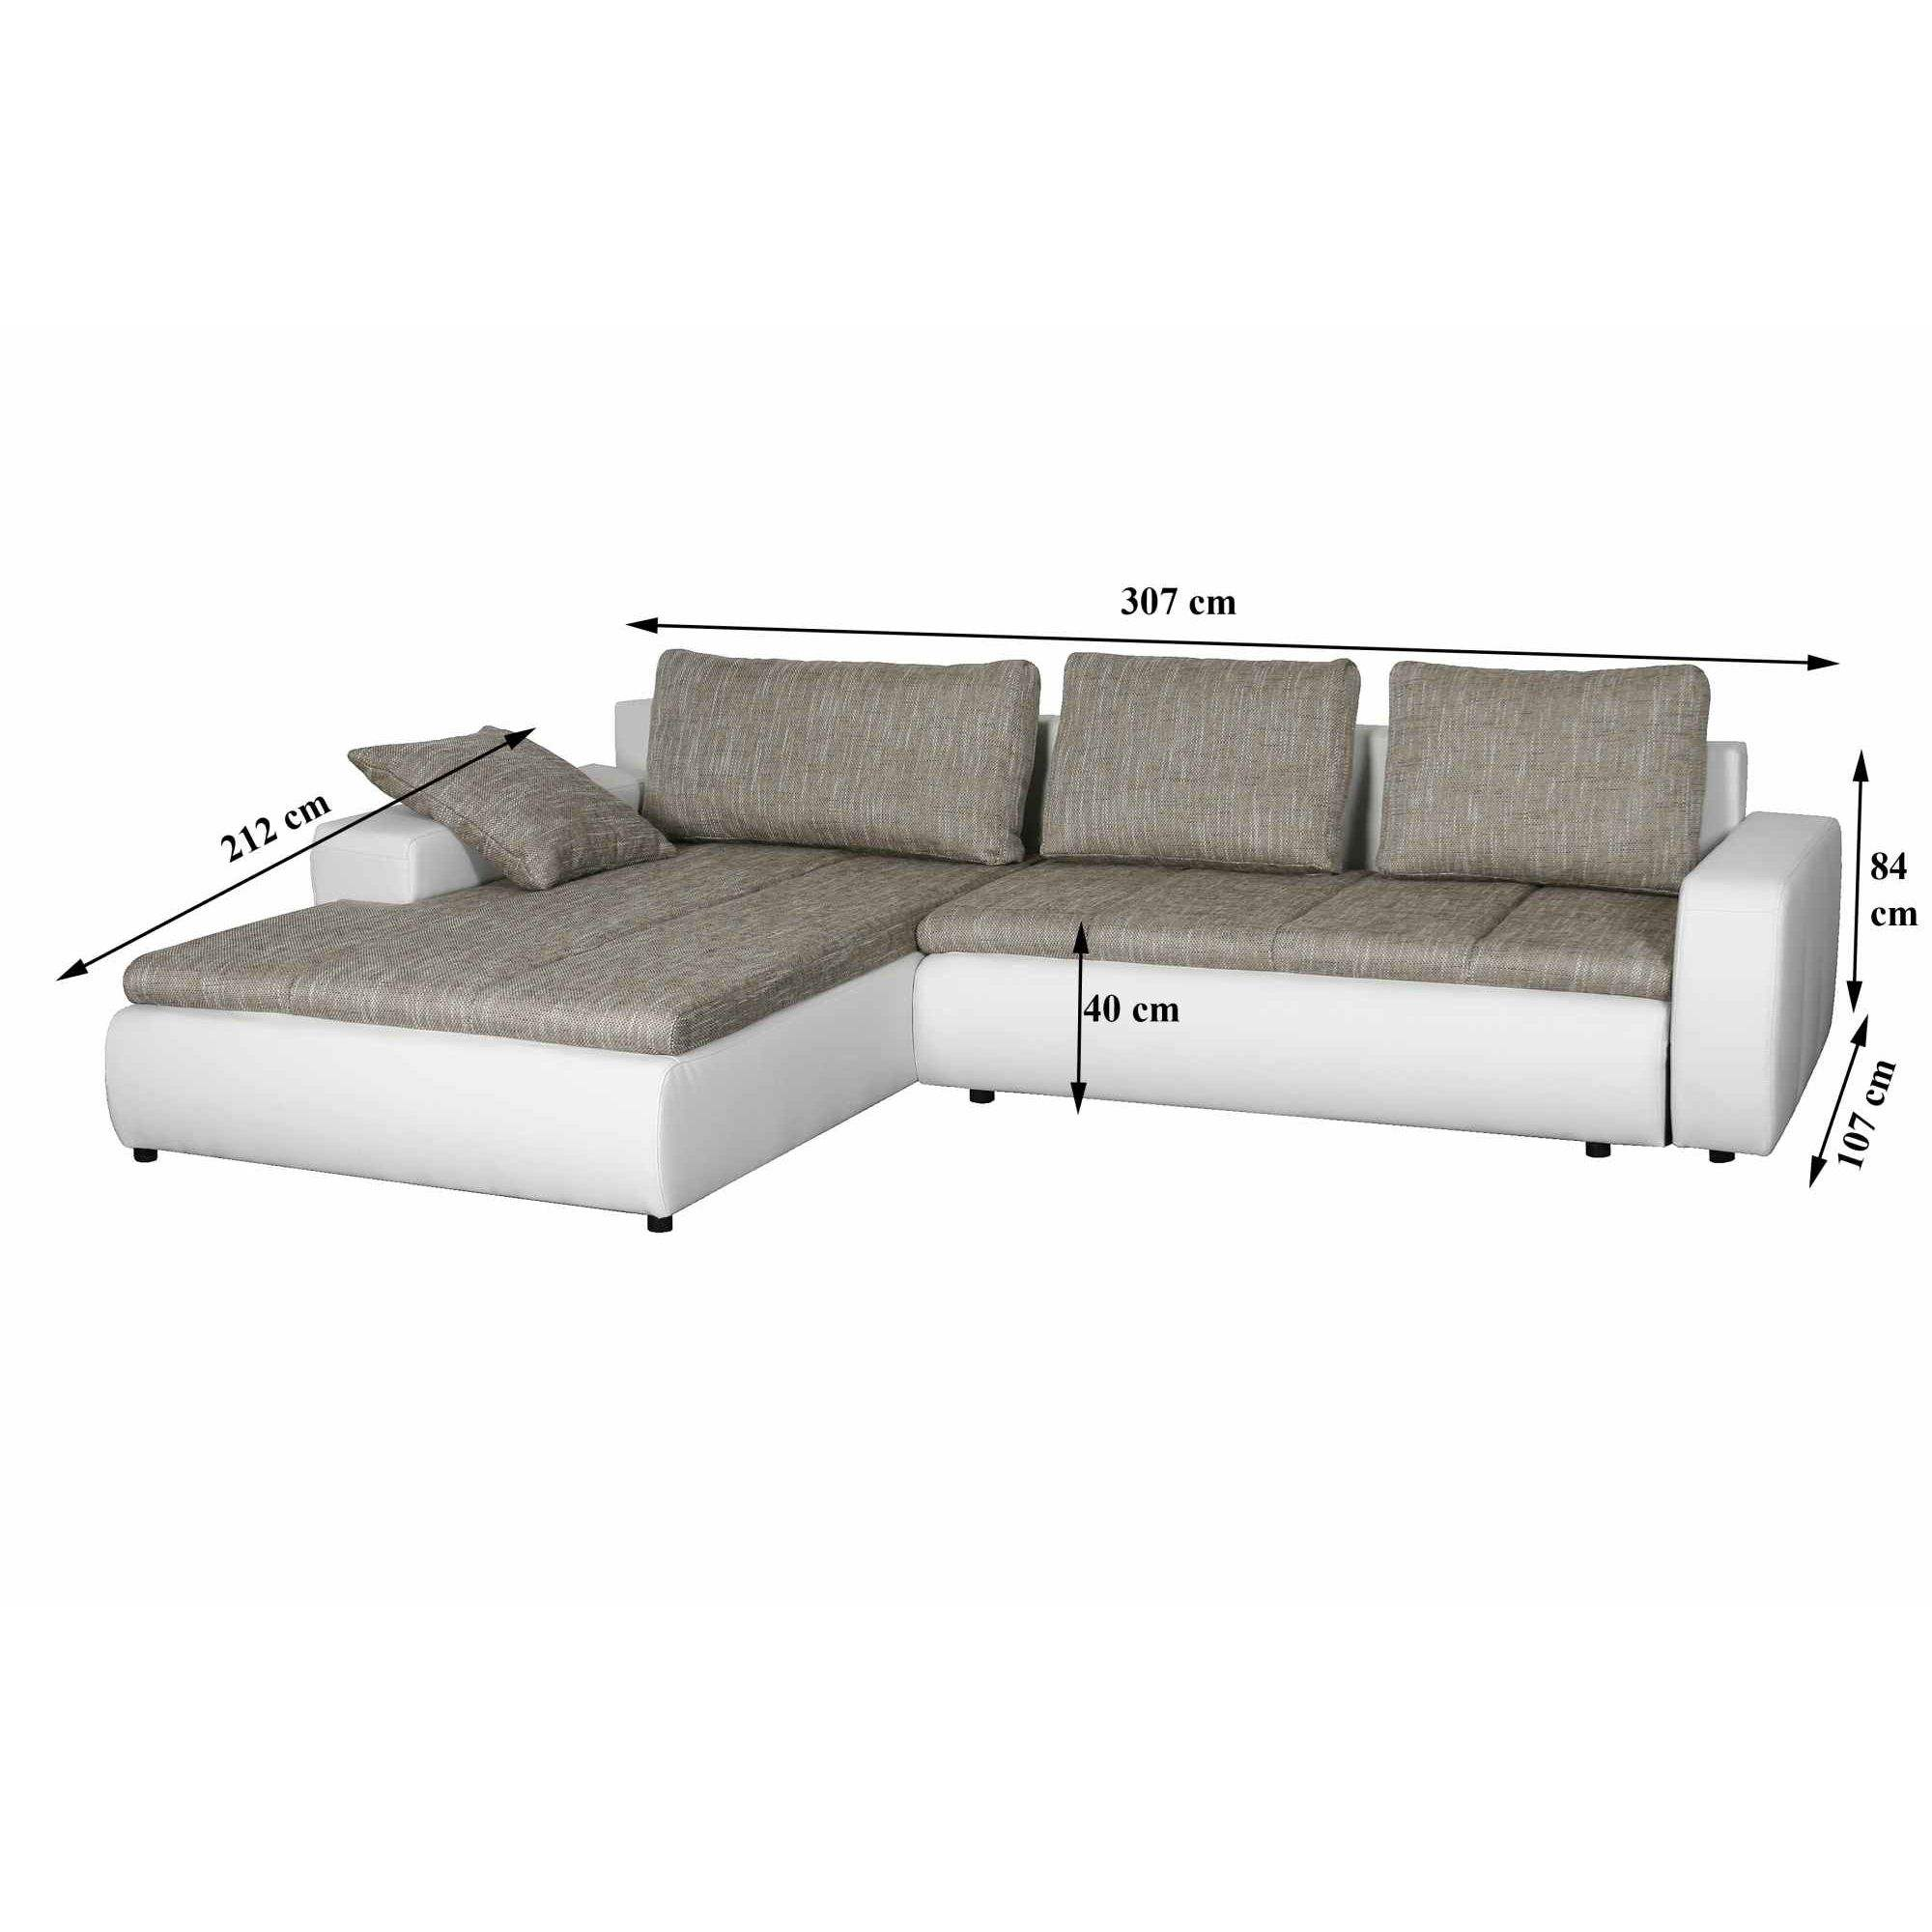 Deco in paris canape d angle convertible beige et blanc for Canape angle design